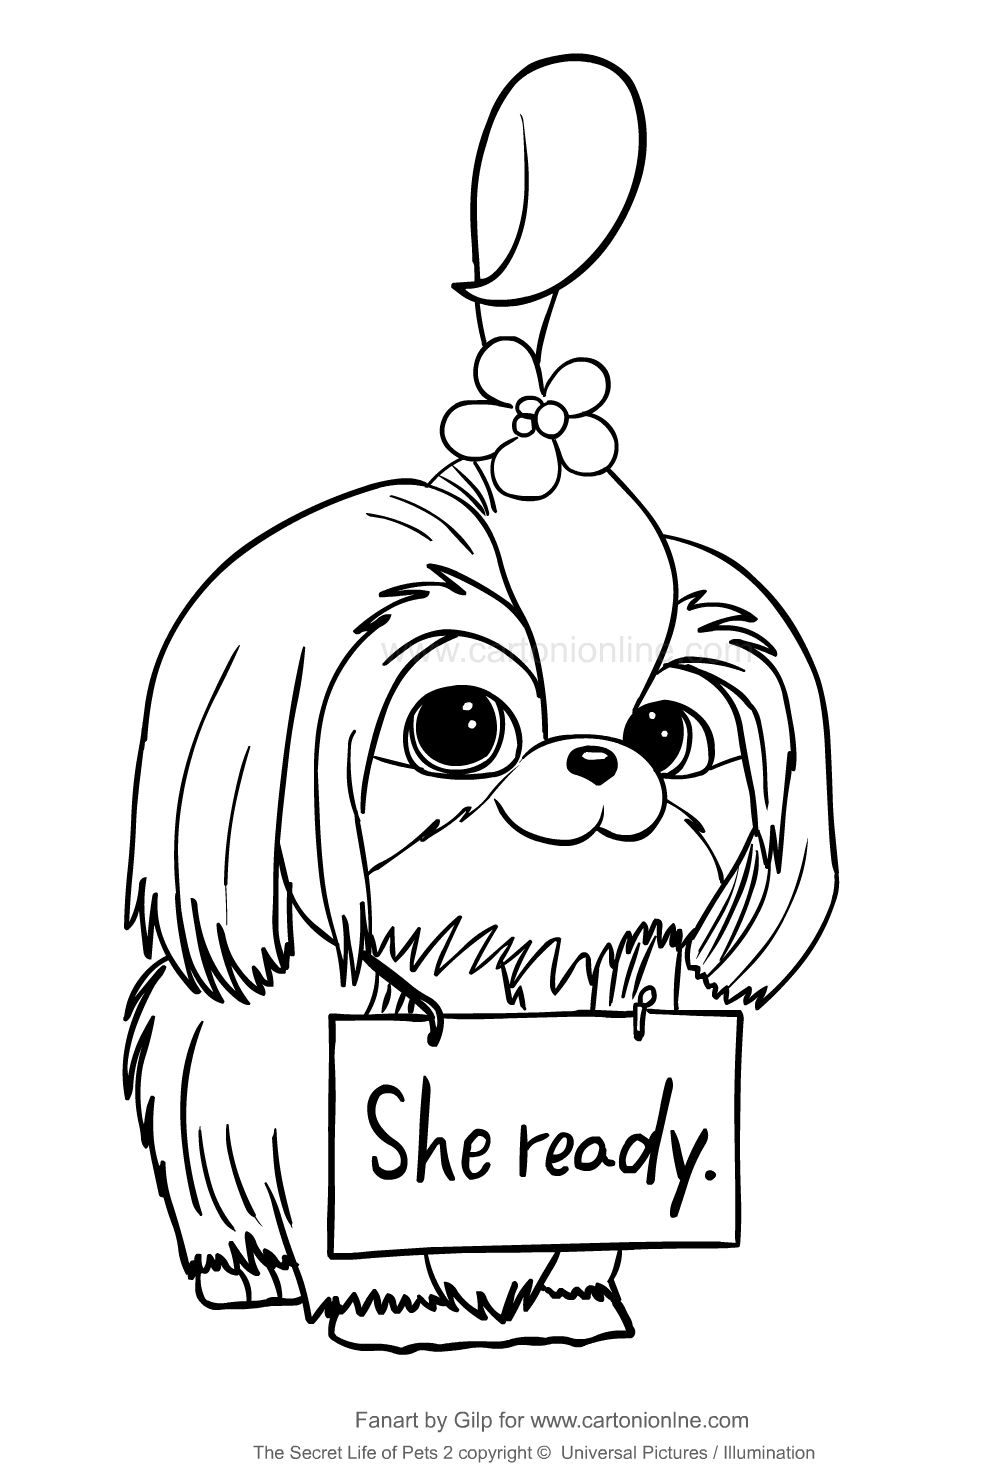 Daisy From The Secret Life Of Pets 2 Coloring Page To Print And